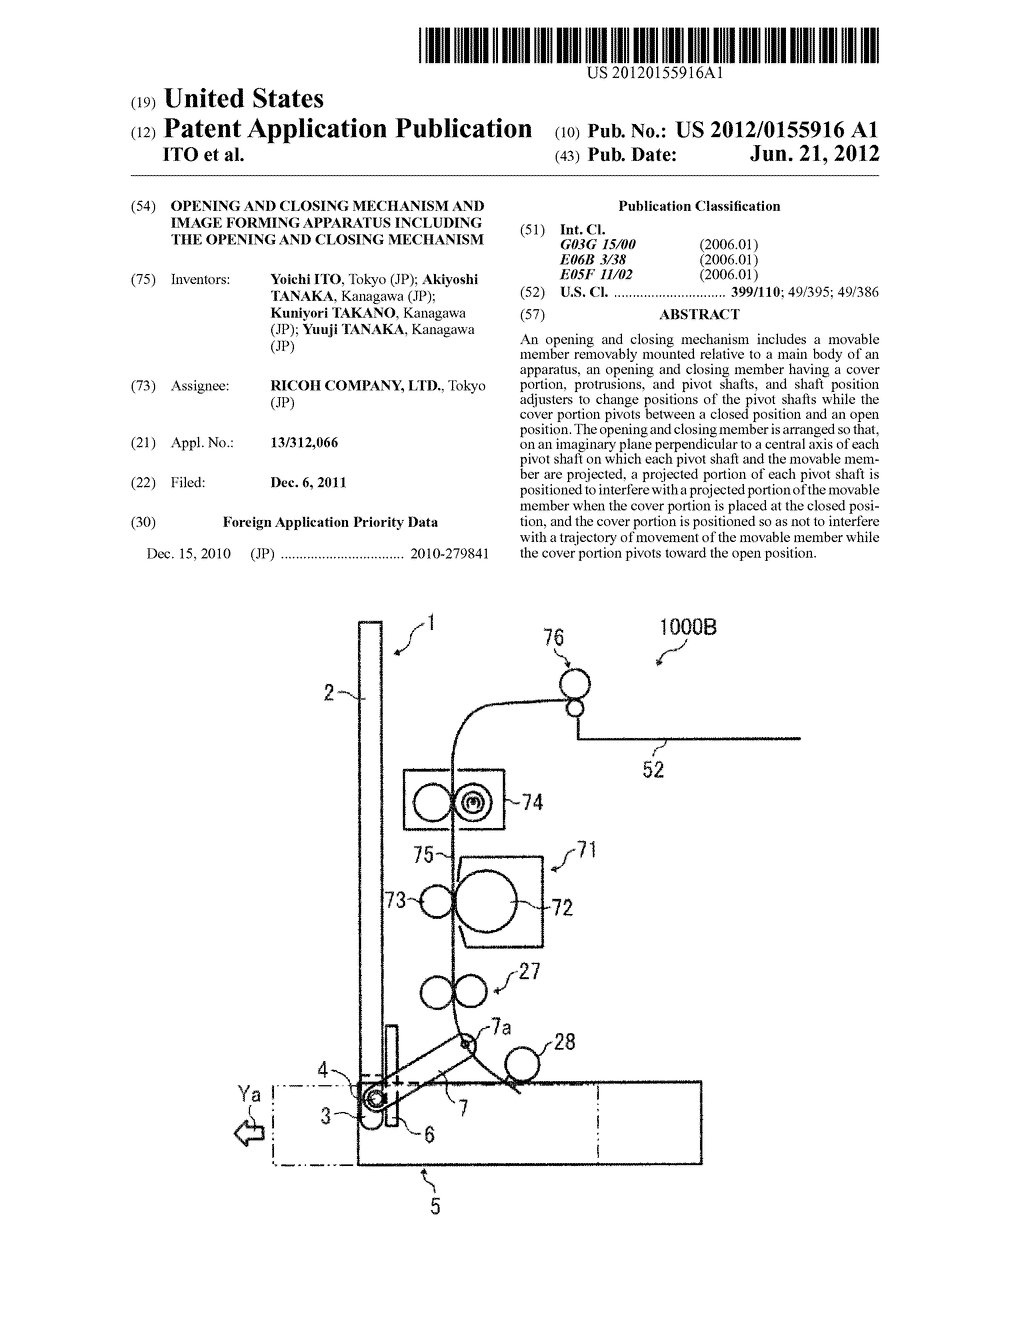 OPENING AND CLOSING MECHANISM AND IMAGE FORMING APPARATUS INCLUDING THE     OPENING AND CLOSING MECHANISM - diagram, schematic, and image 01